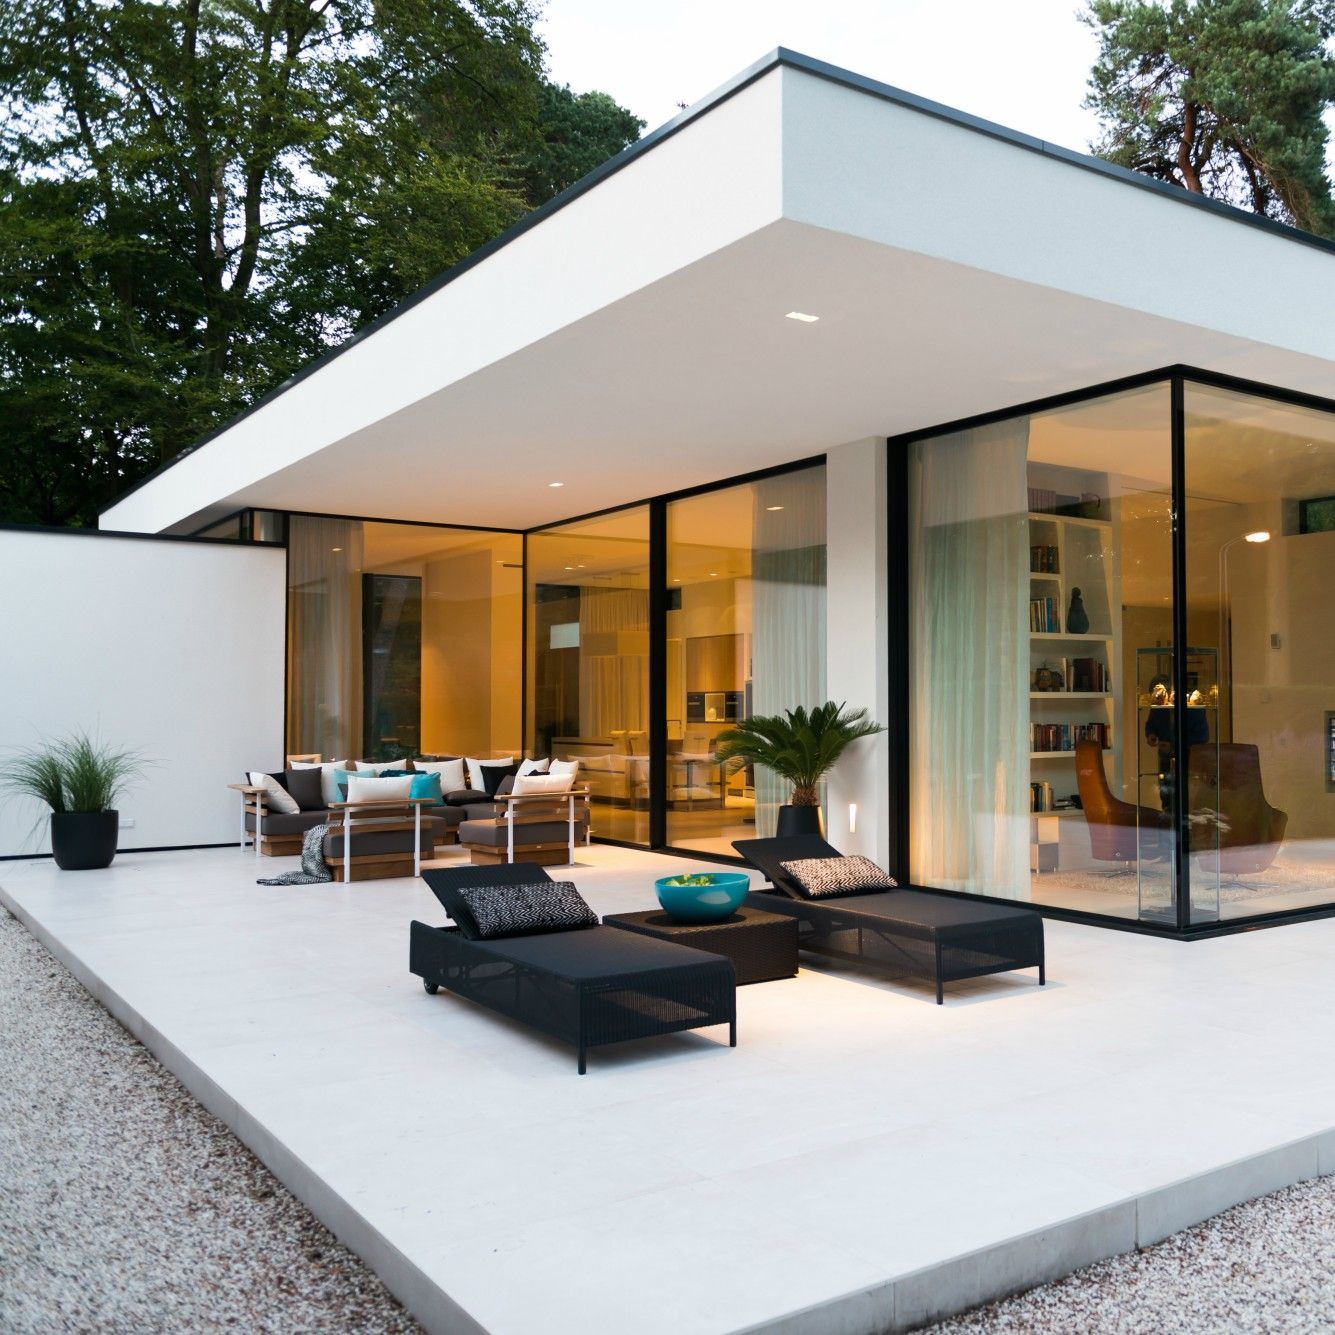 What Is A Bungalow Style Home: INTERIEUR I BINNENKIJKEN I Moderne Bungalow In Ermelo